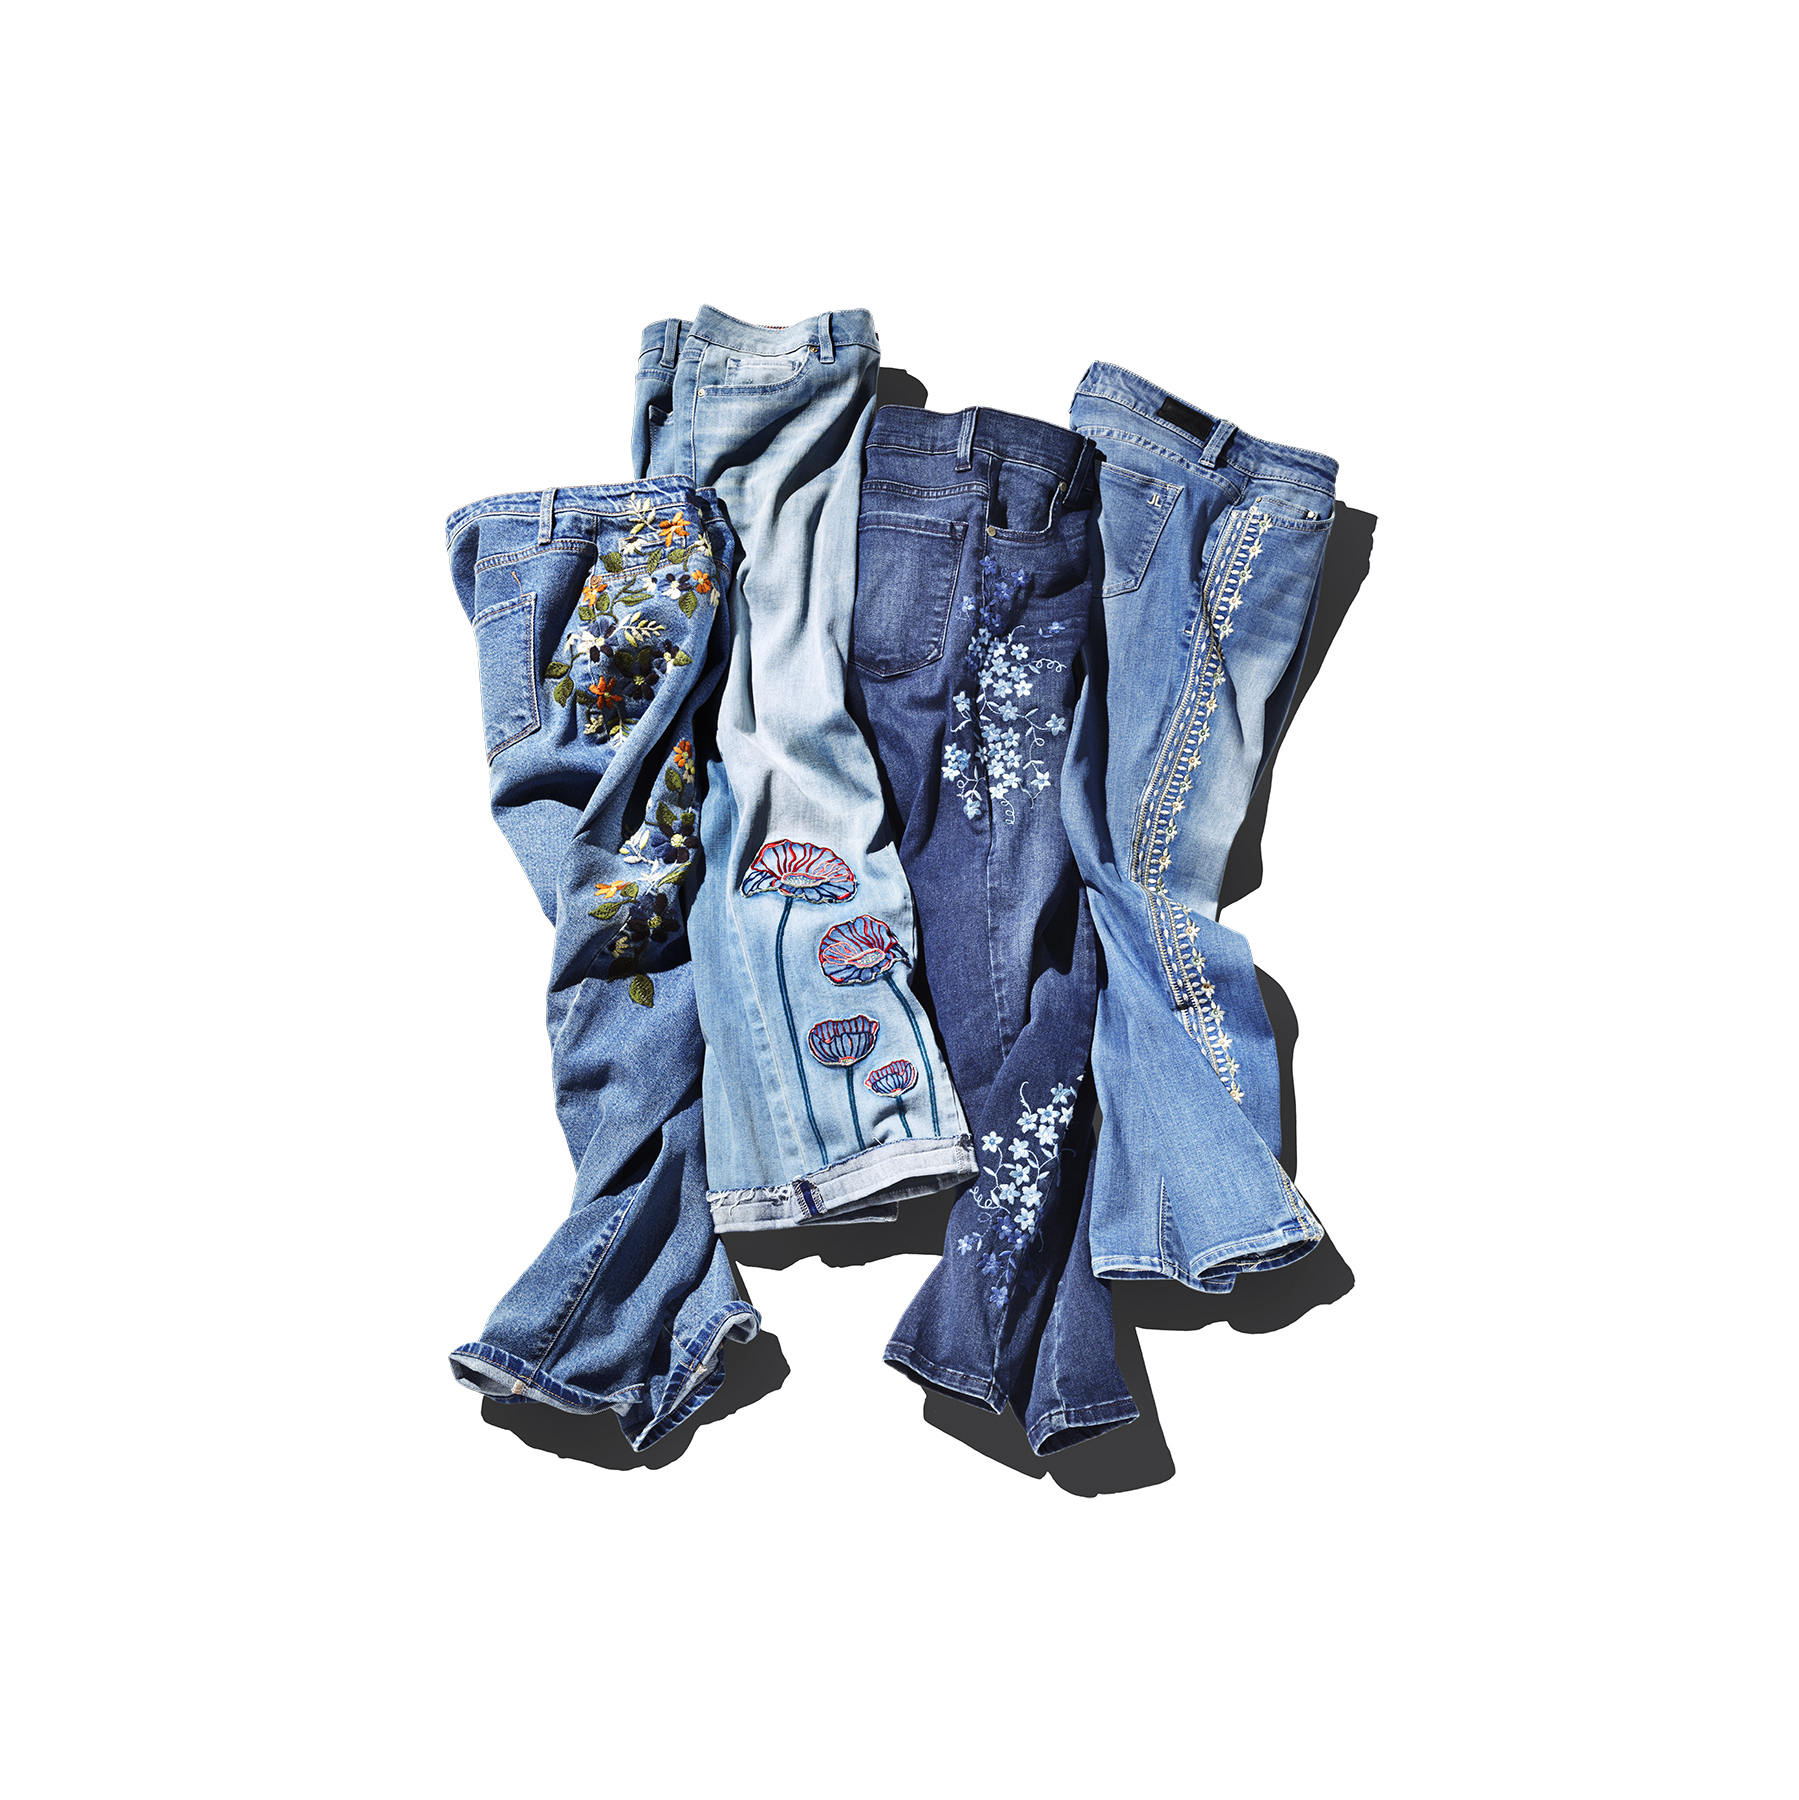 Jeans with fancy stitching